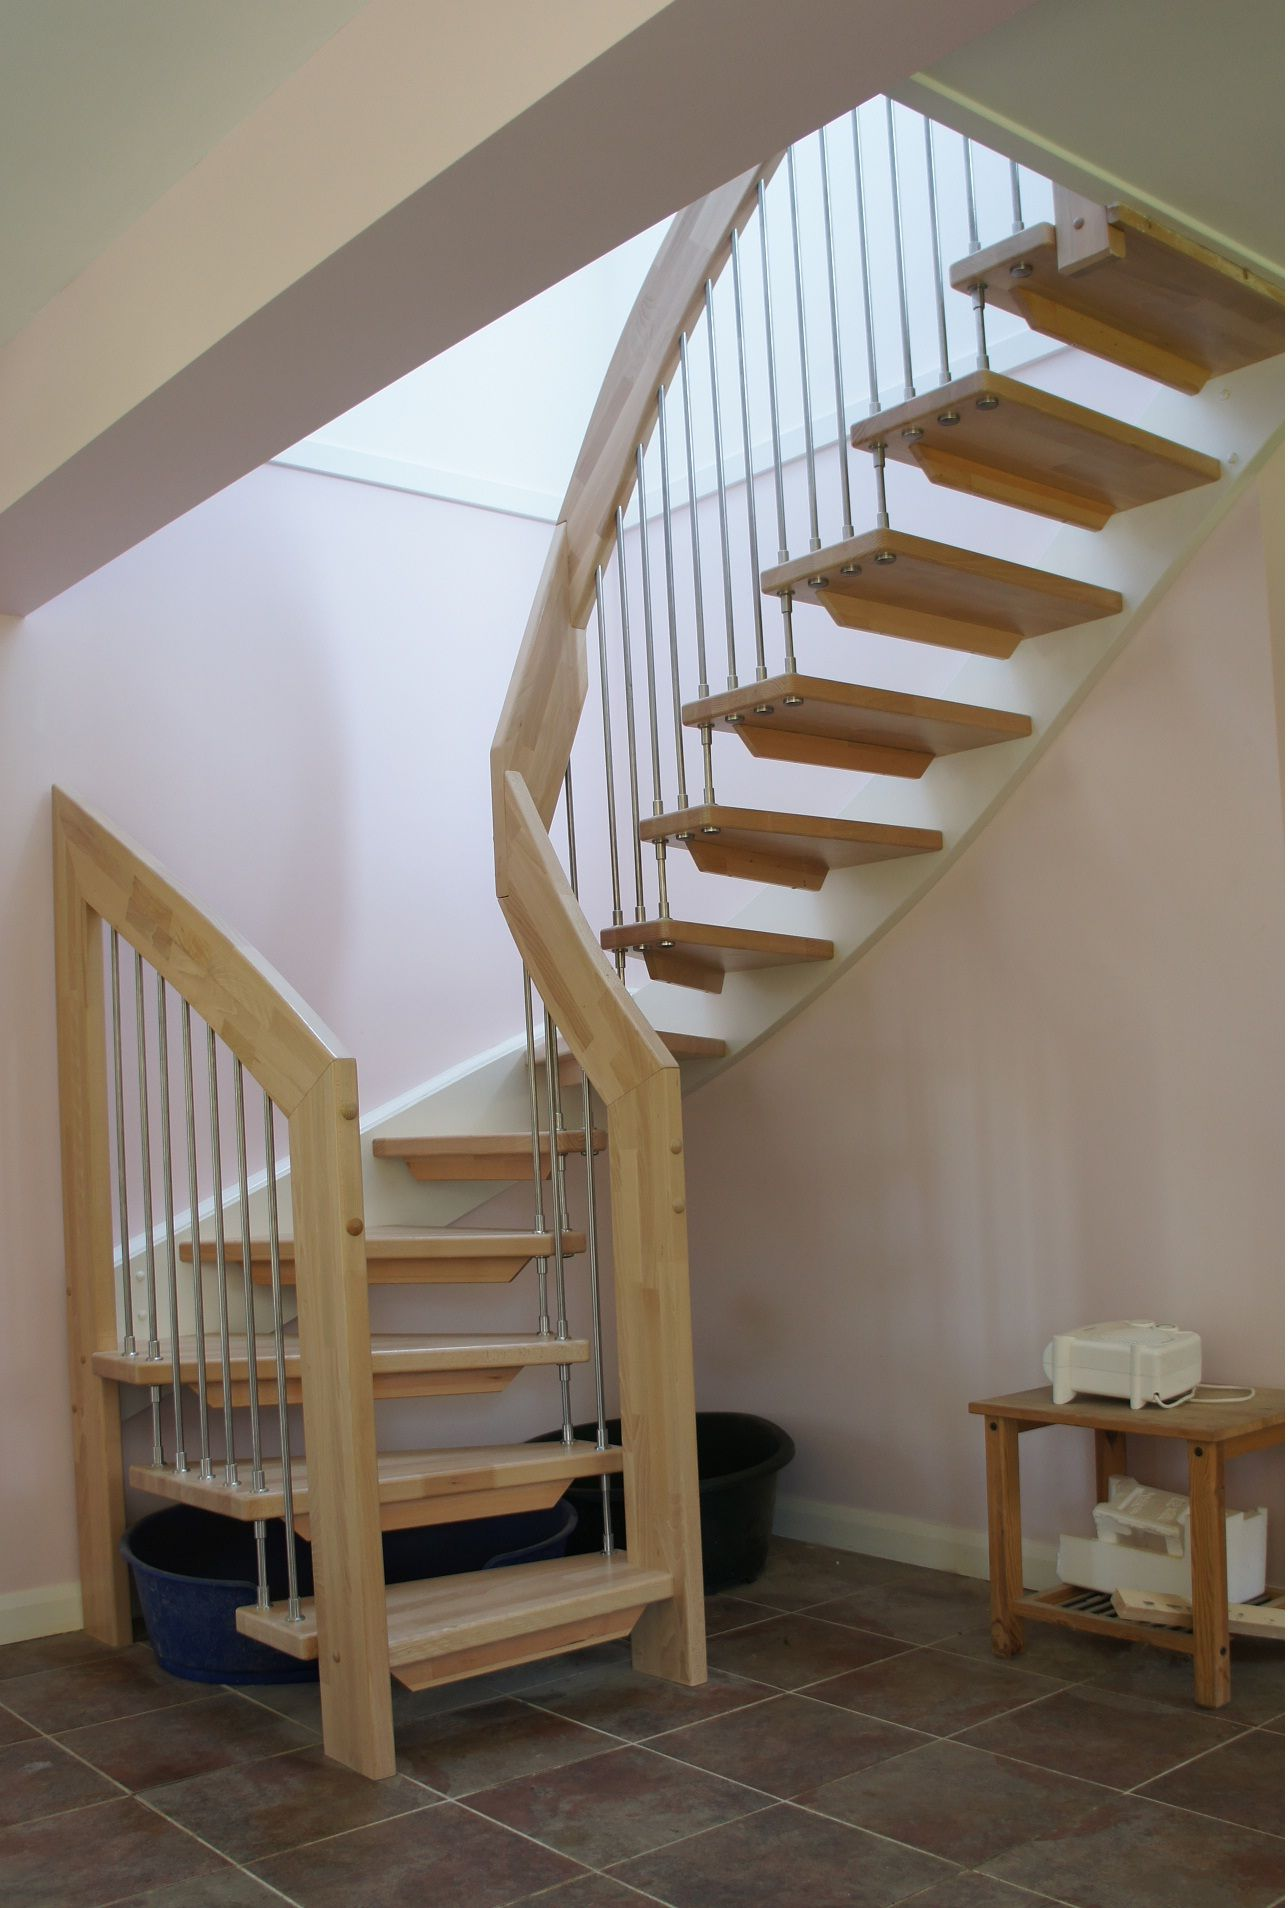 Staircase Ideas For Small Spaces Staircase Ideas Category For